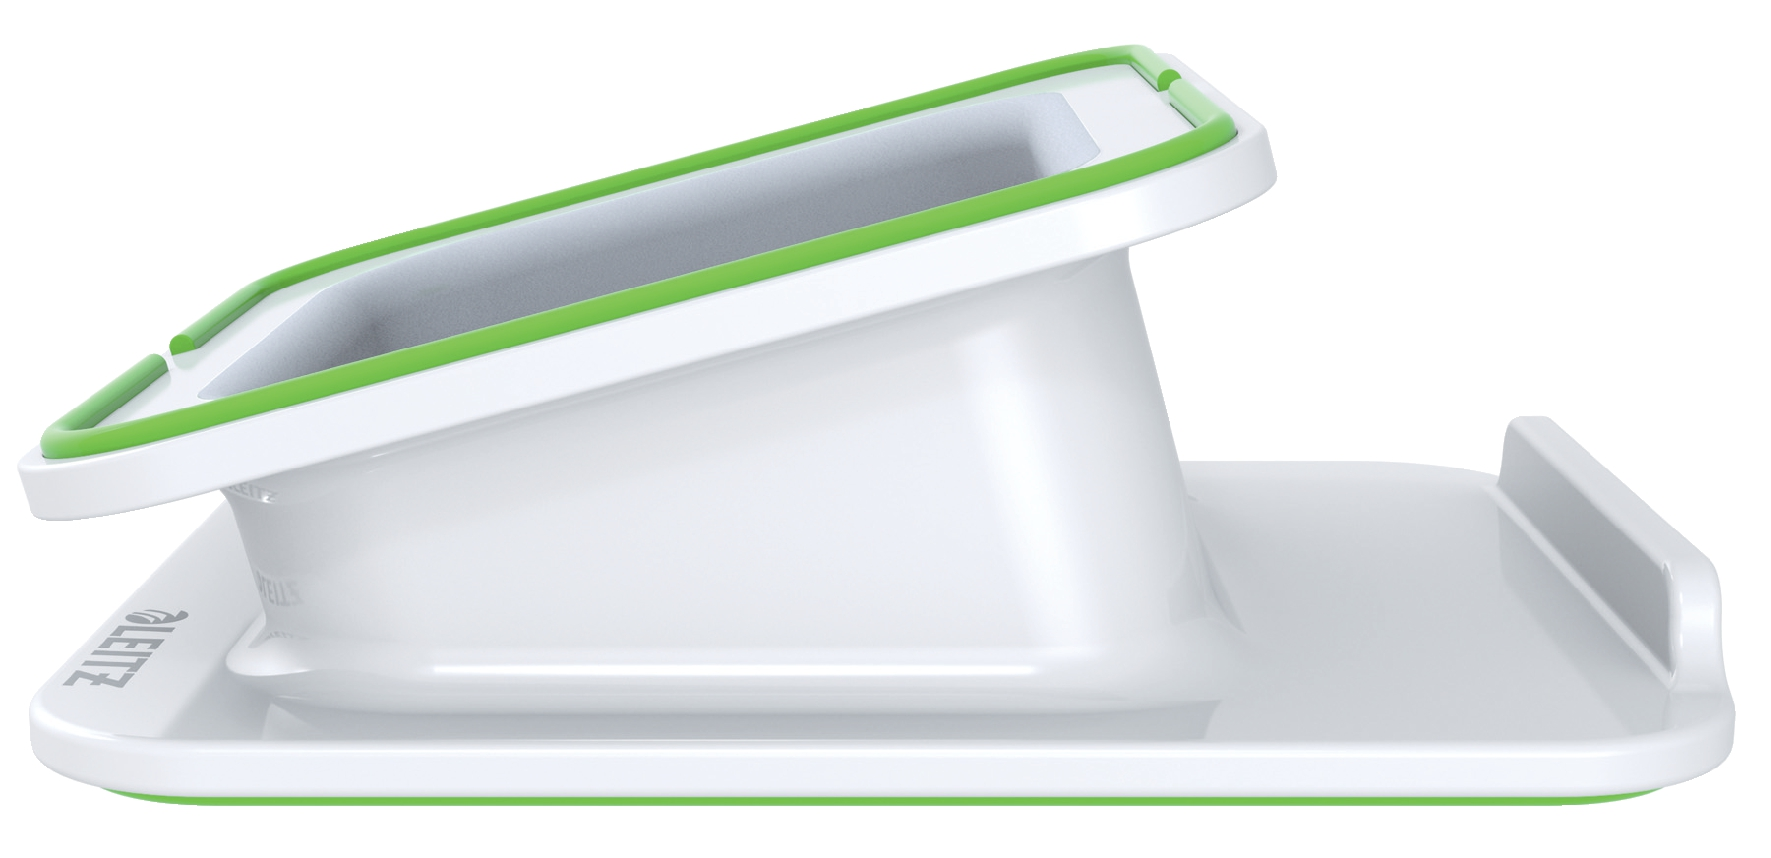 Image for Leitz Complete Desk Stand for Iphone/Ipad White (0)